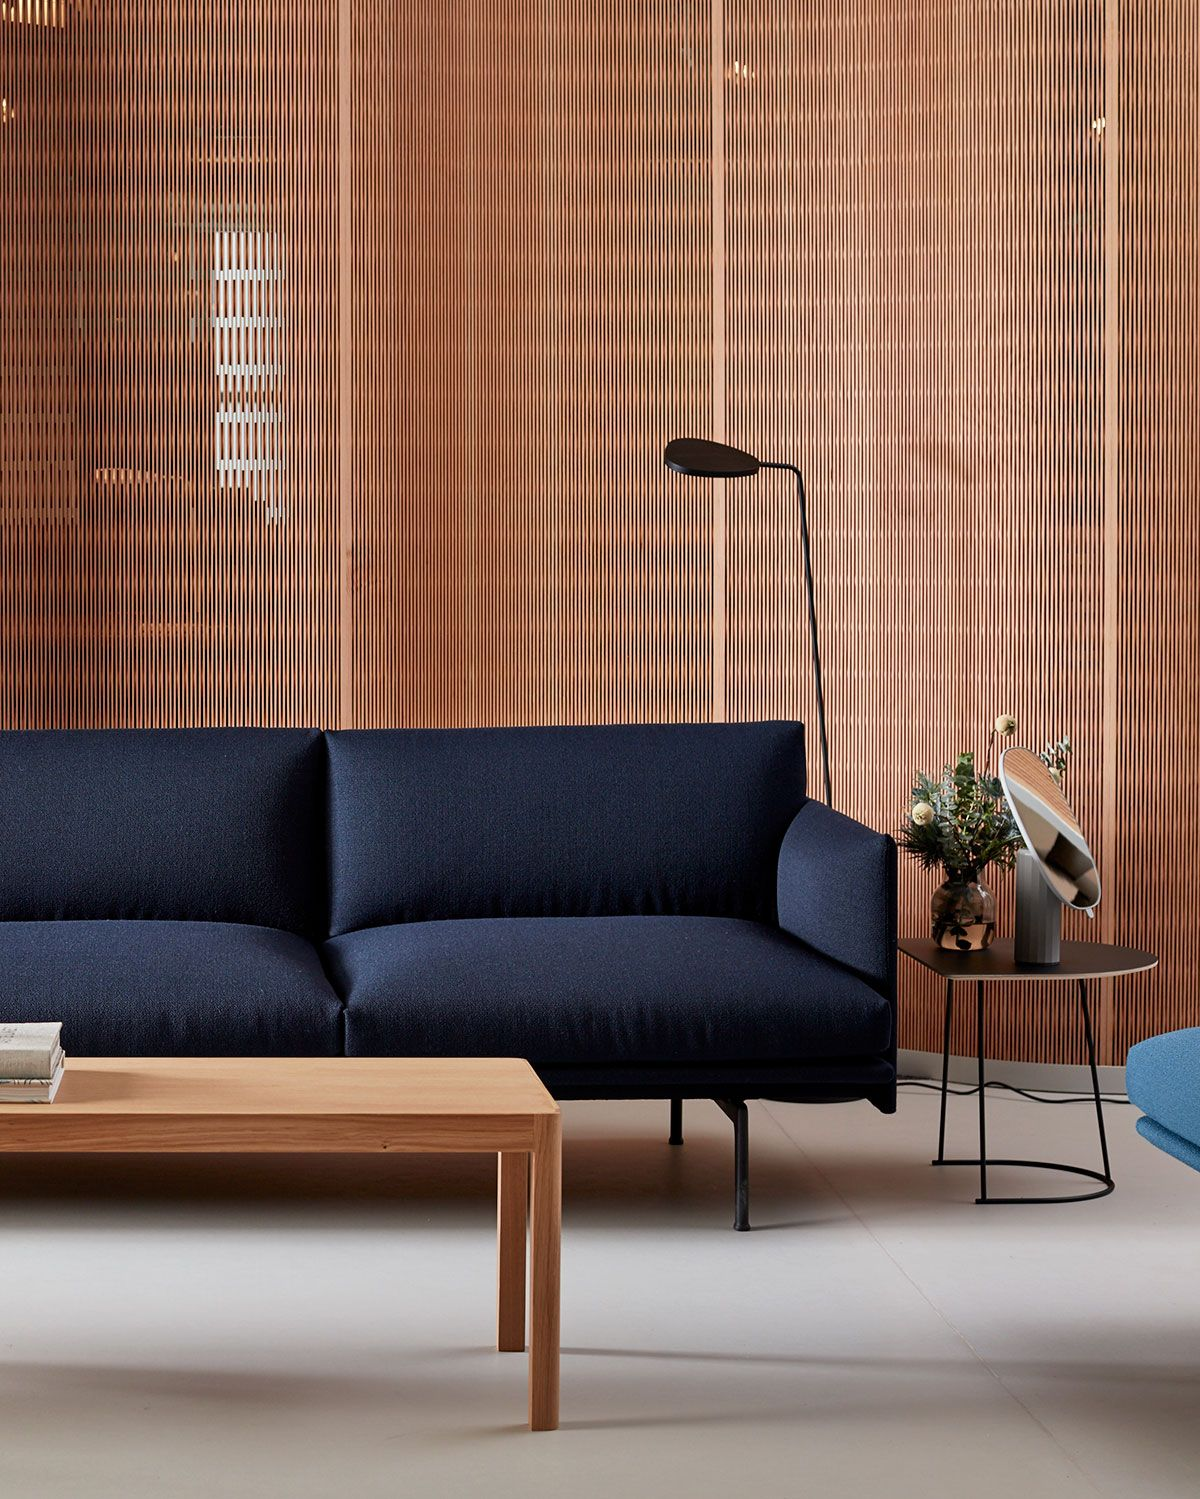 Muuto Sofa The Outline Sofa Family Designed By Anderssen Voll For Muuto